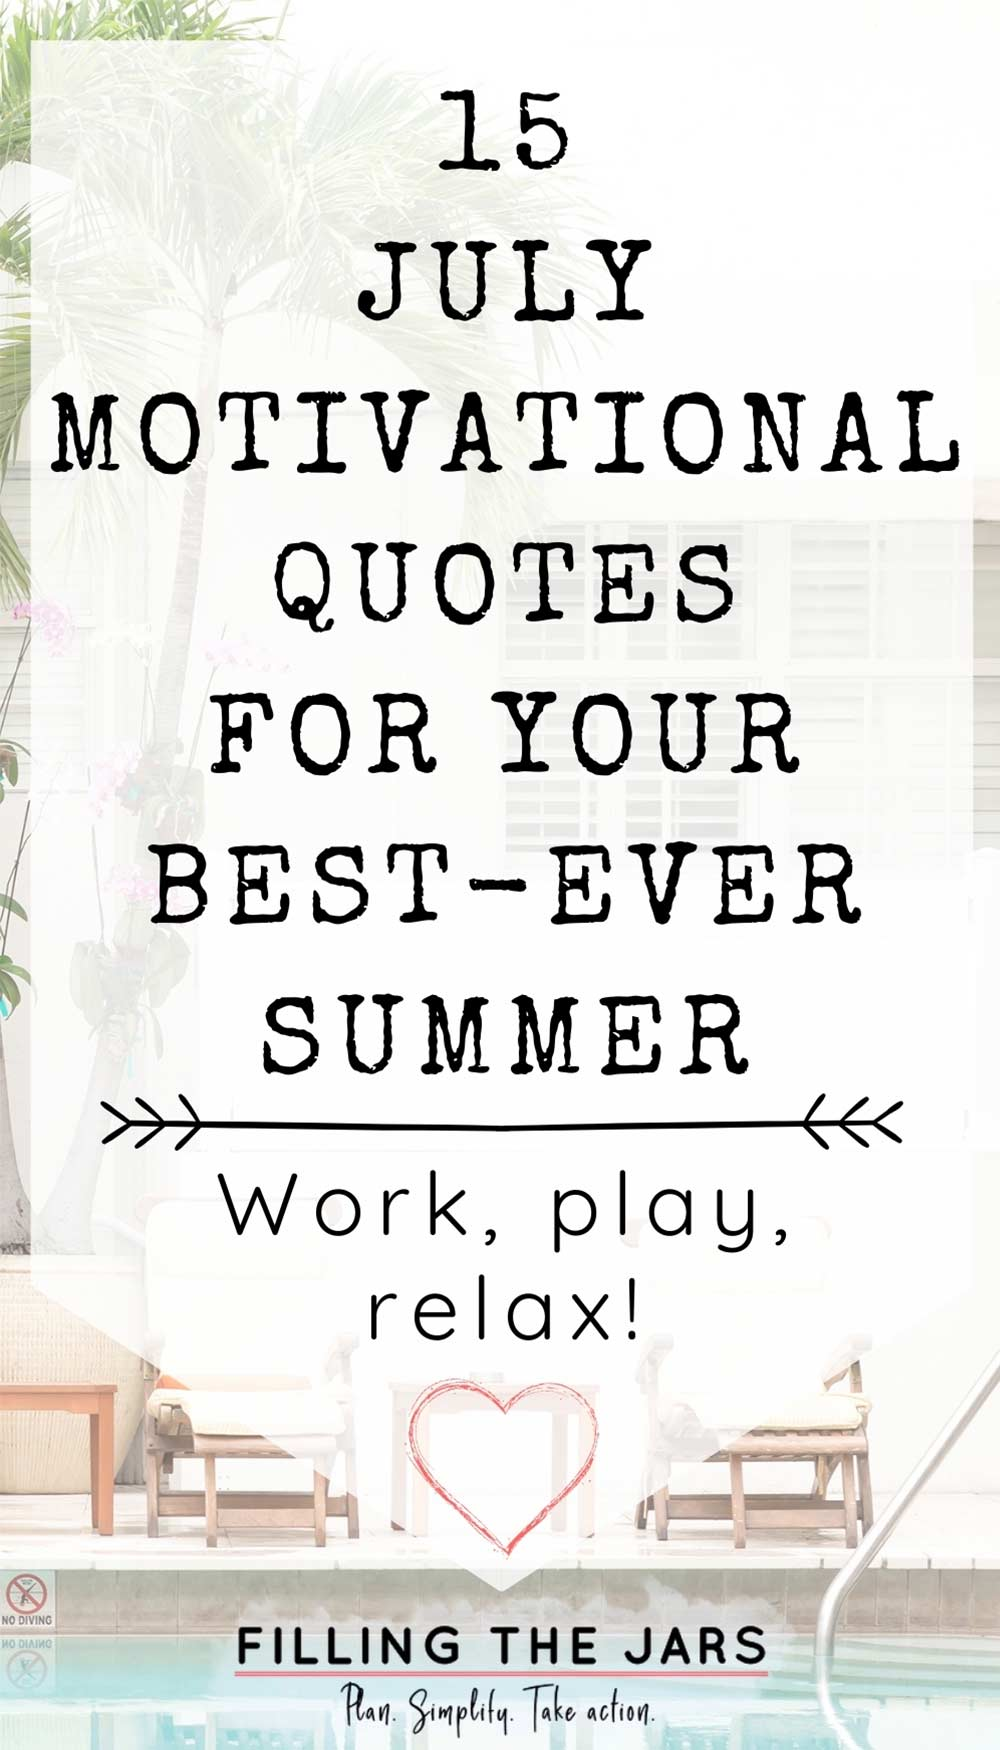 Text July motivational quotes for your best-ever summer on white background over image of lounge chairs next to swimming pool.